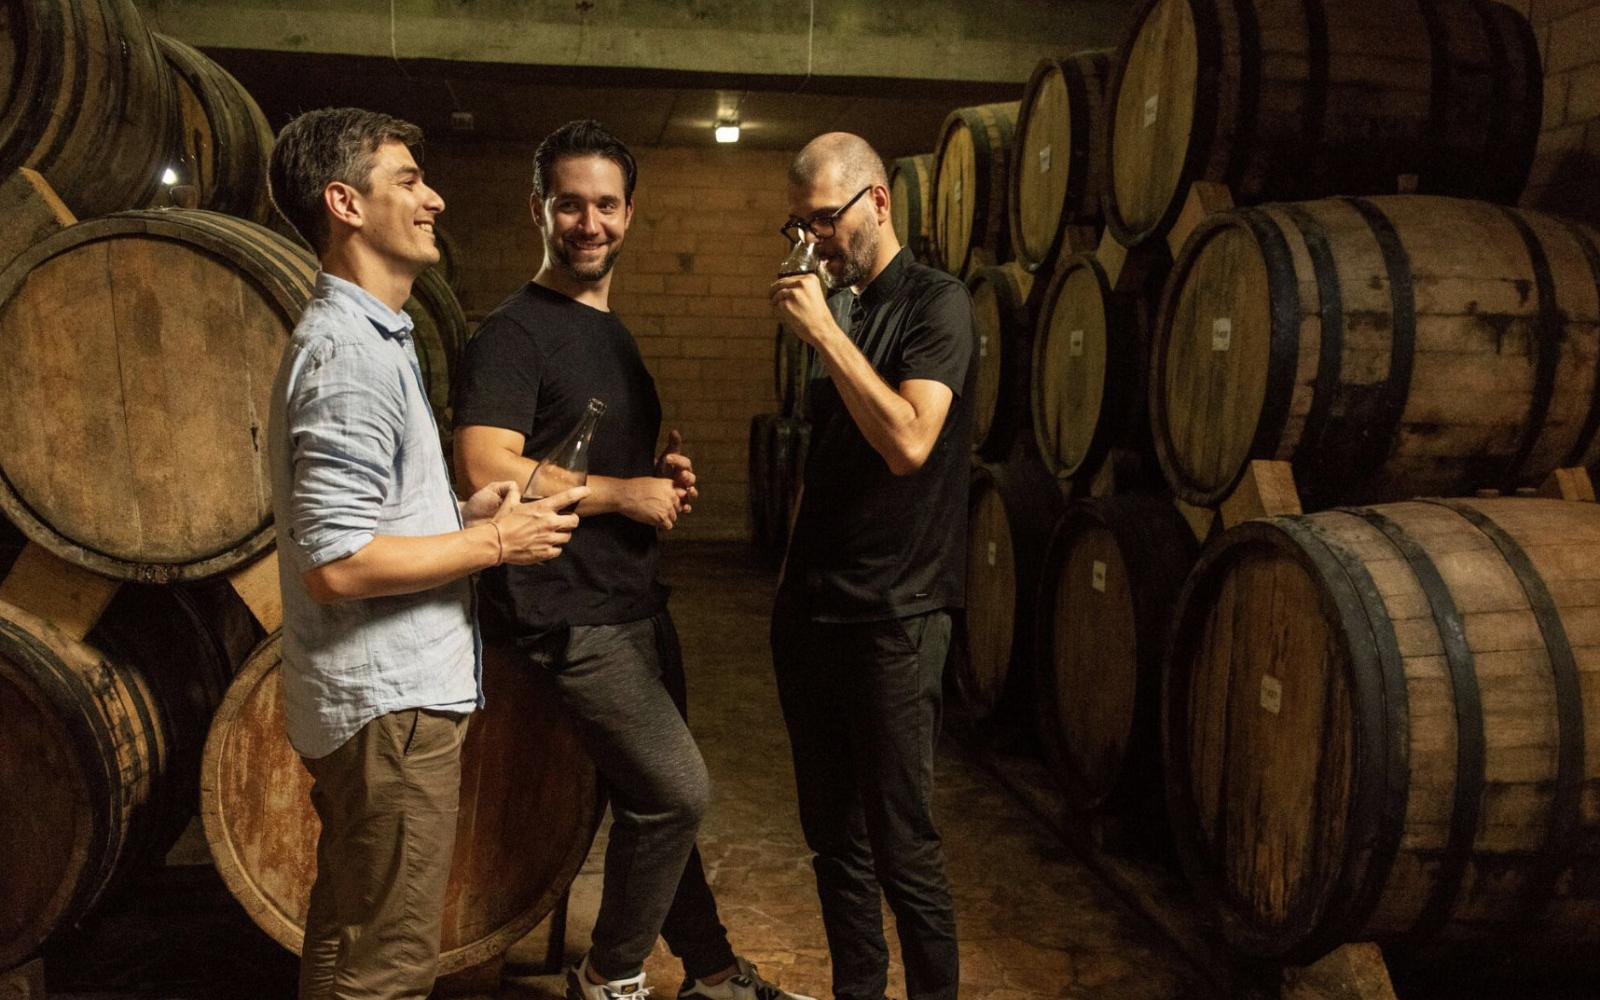 Sourcing and blending trip to Armenia: Alexis Ohanian (middle) and Flaviar Co-Founders Jugoslav Petkovic (left) and Grisa Soba (right).